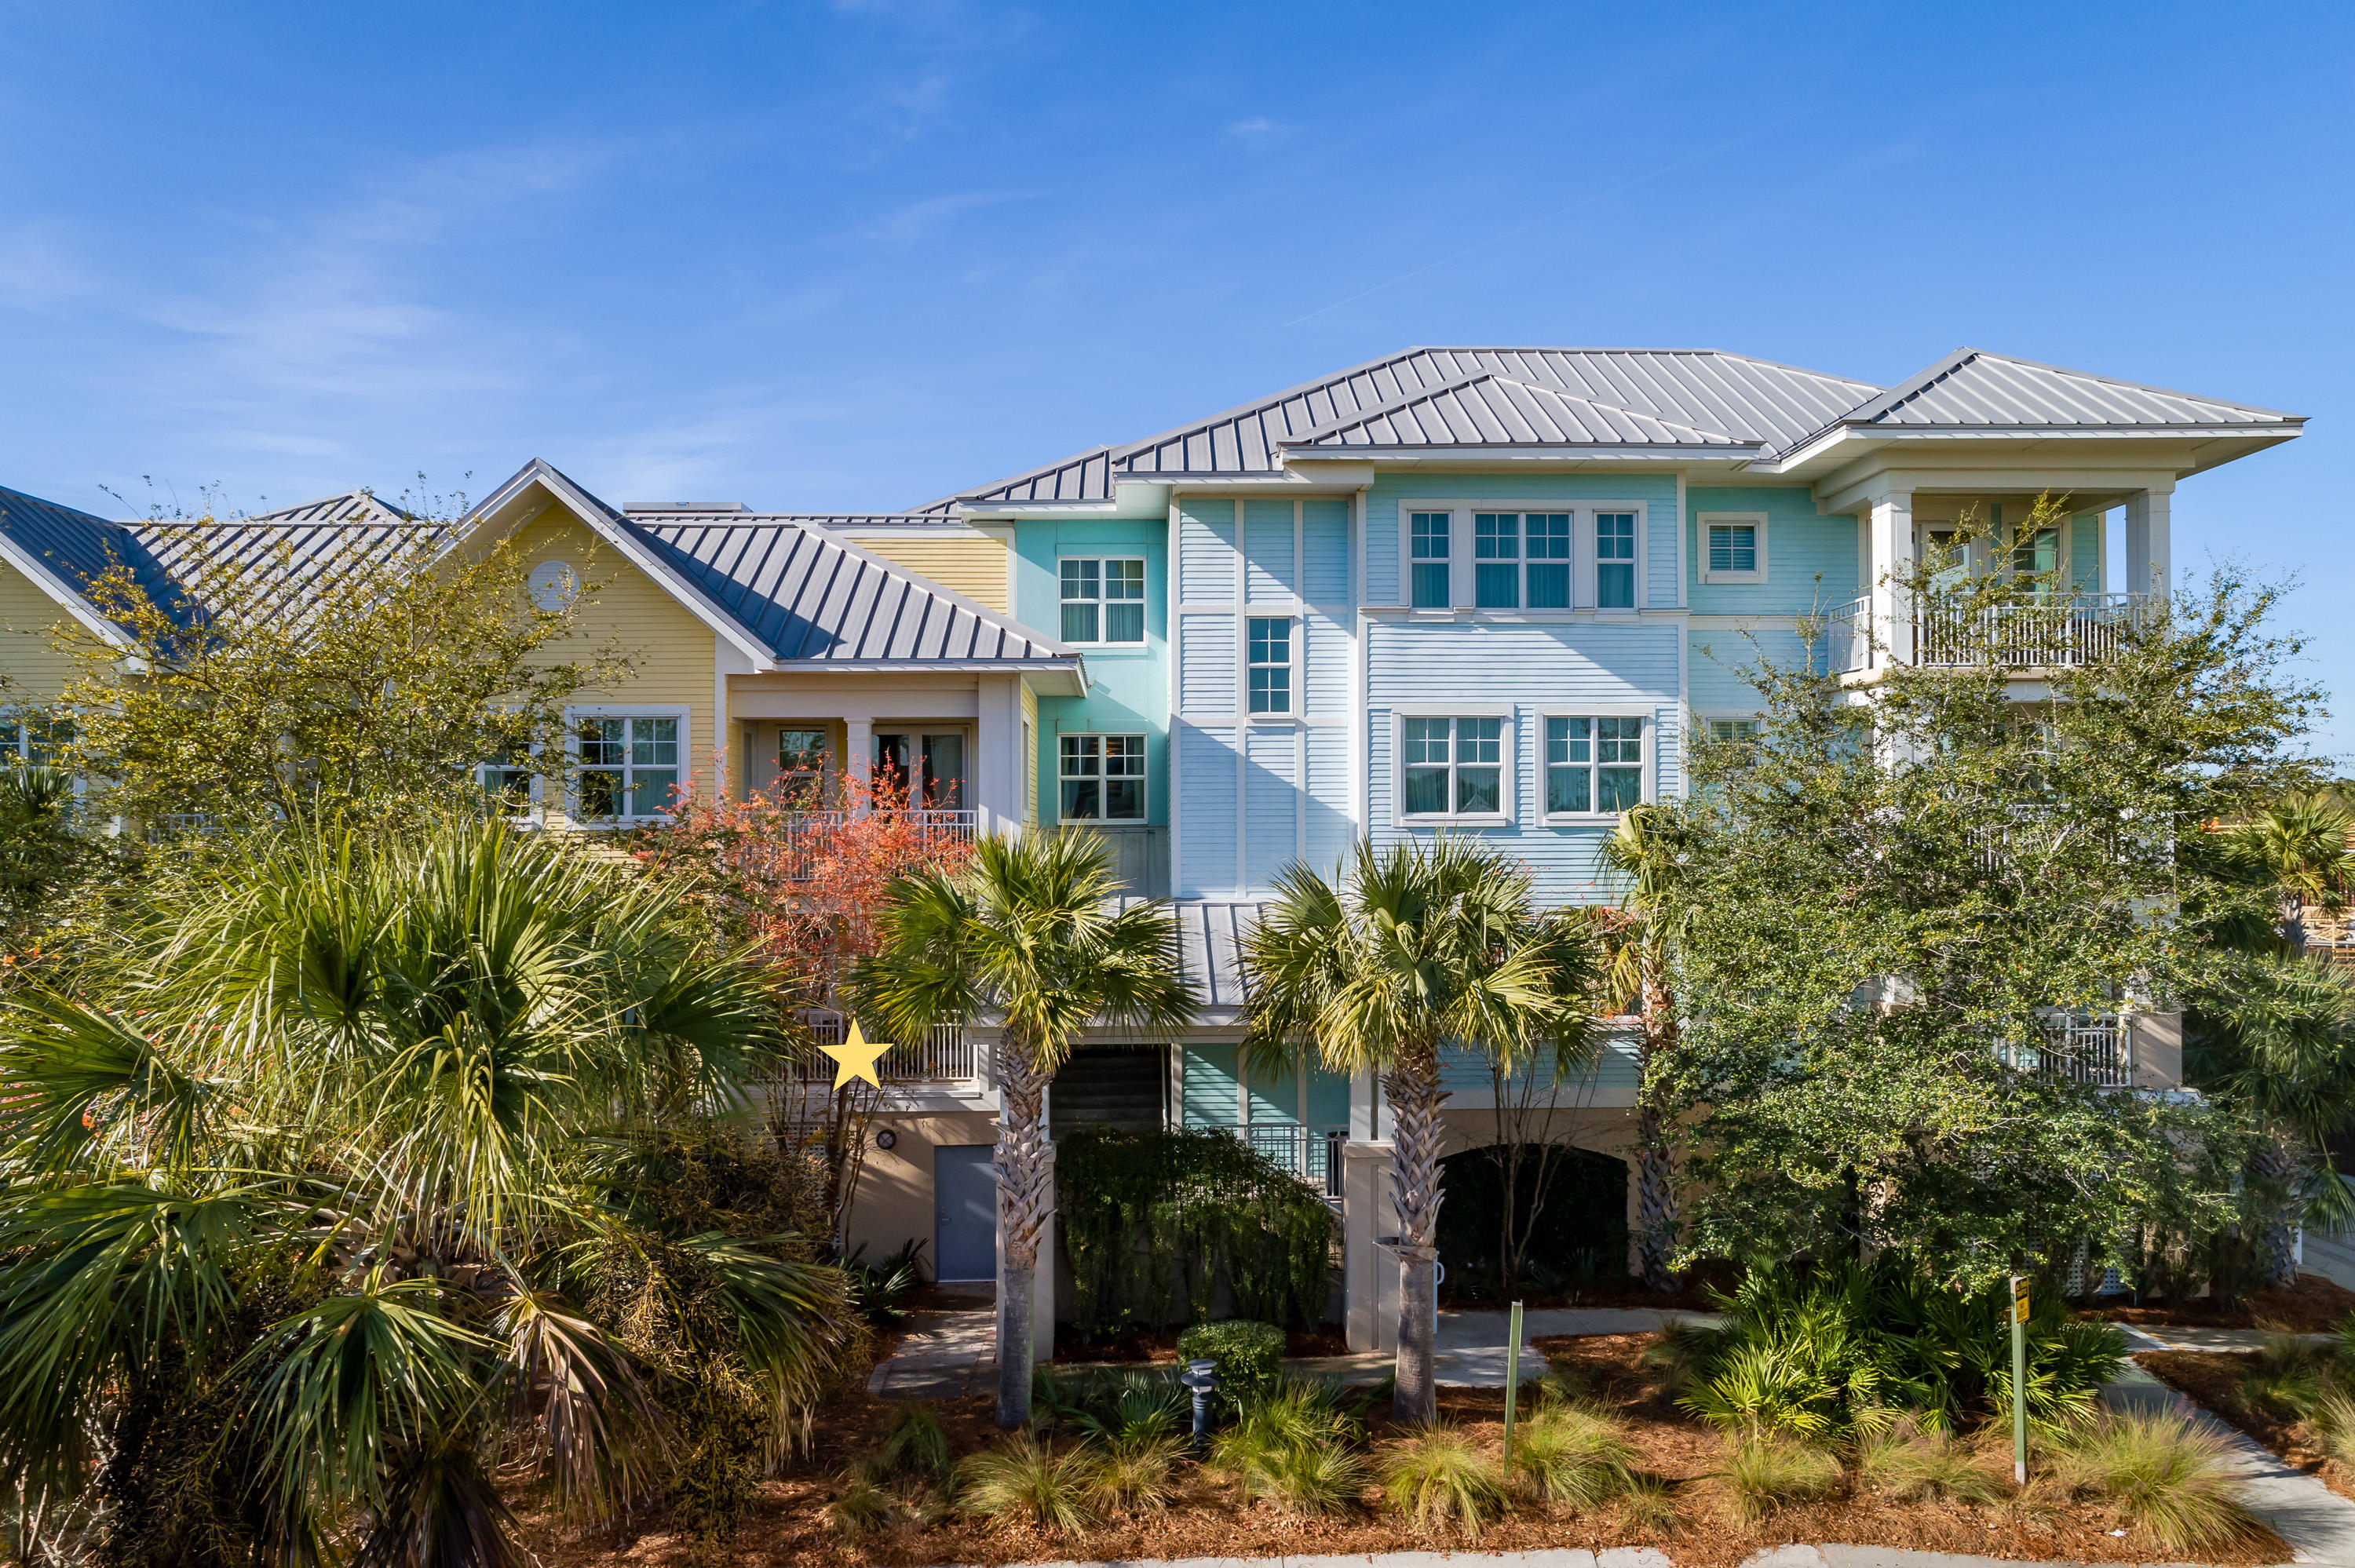 Wild Dunes Homes For Sale - 105 Village At Wild Dunes, Isle of Palms, SC - 6